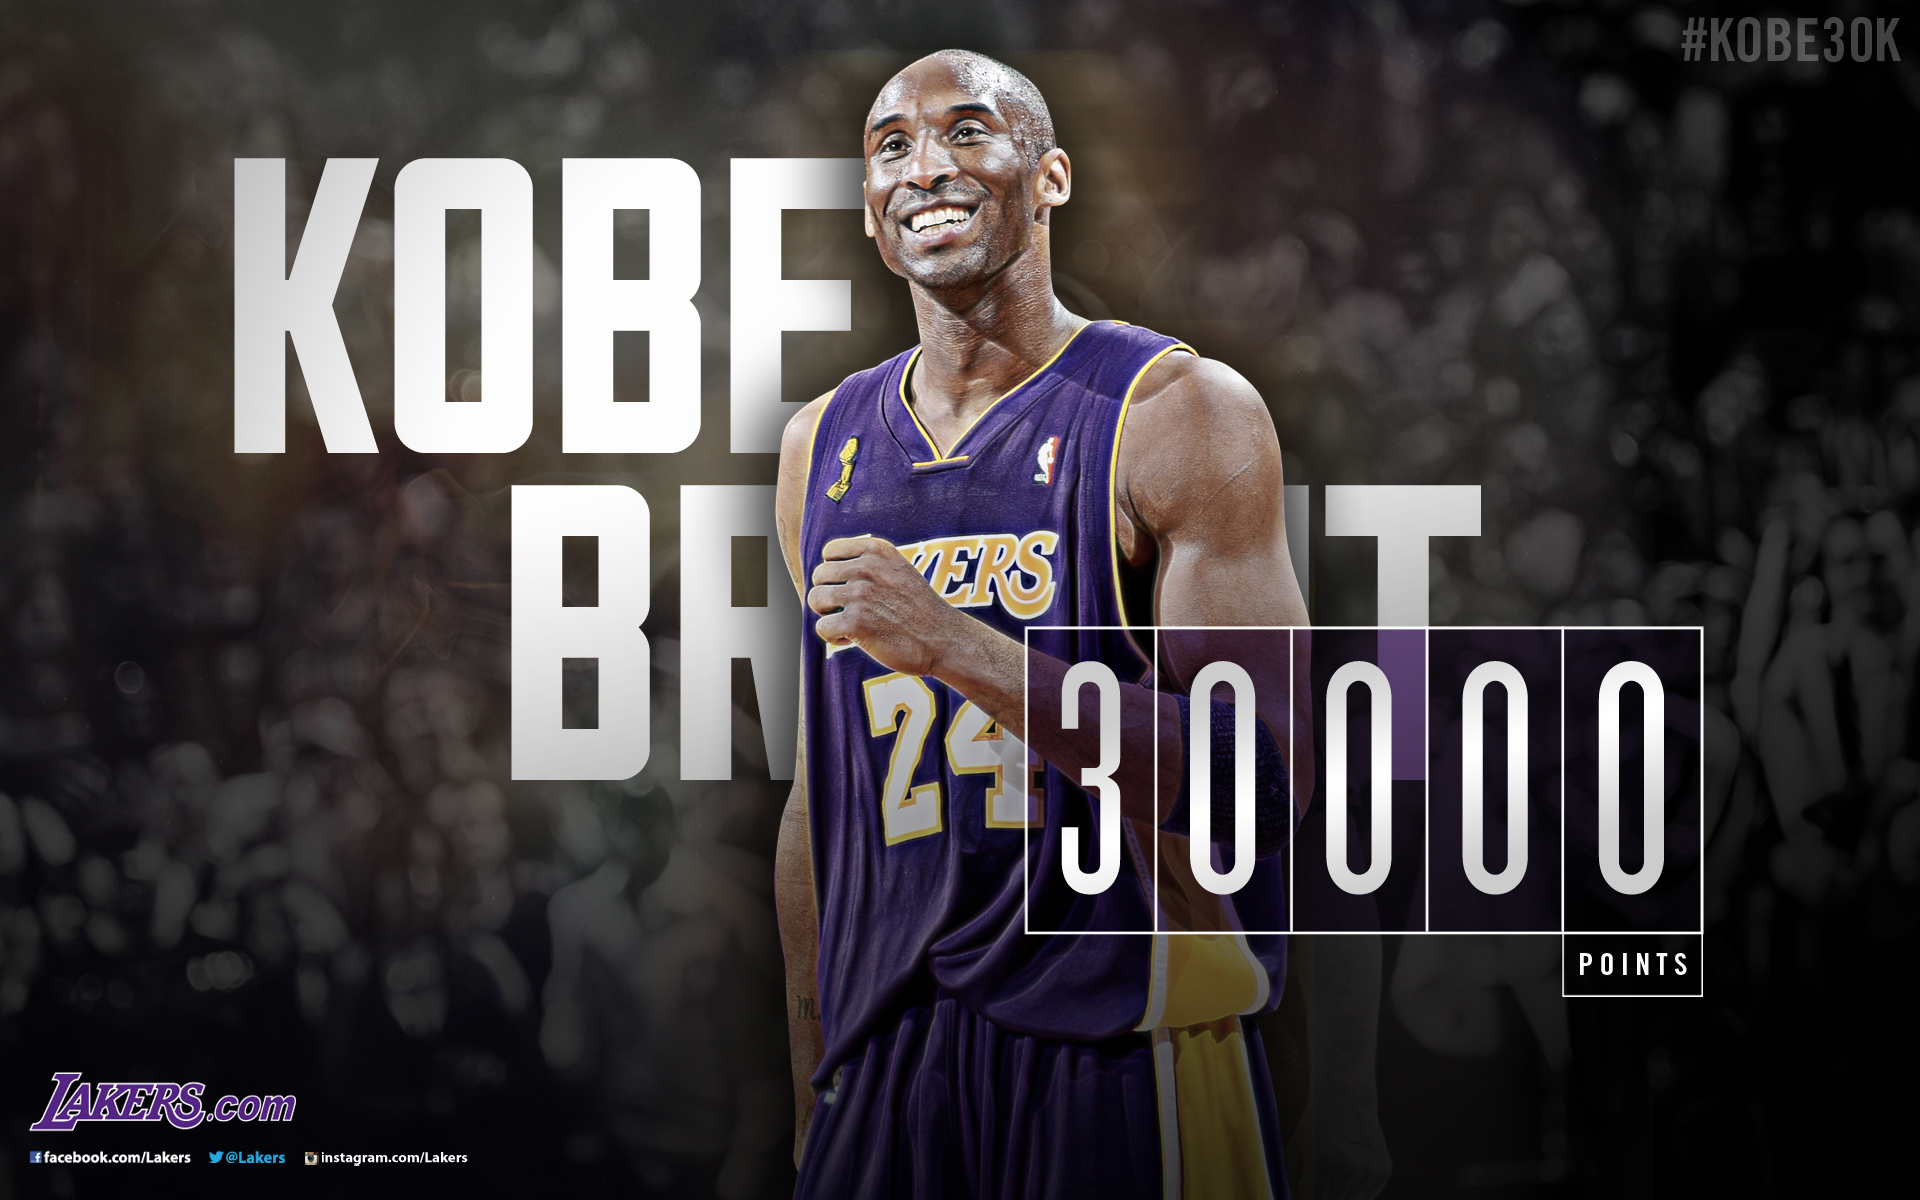 Kobe Bryant 30000 Points